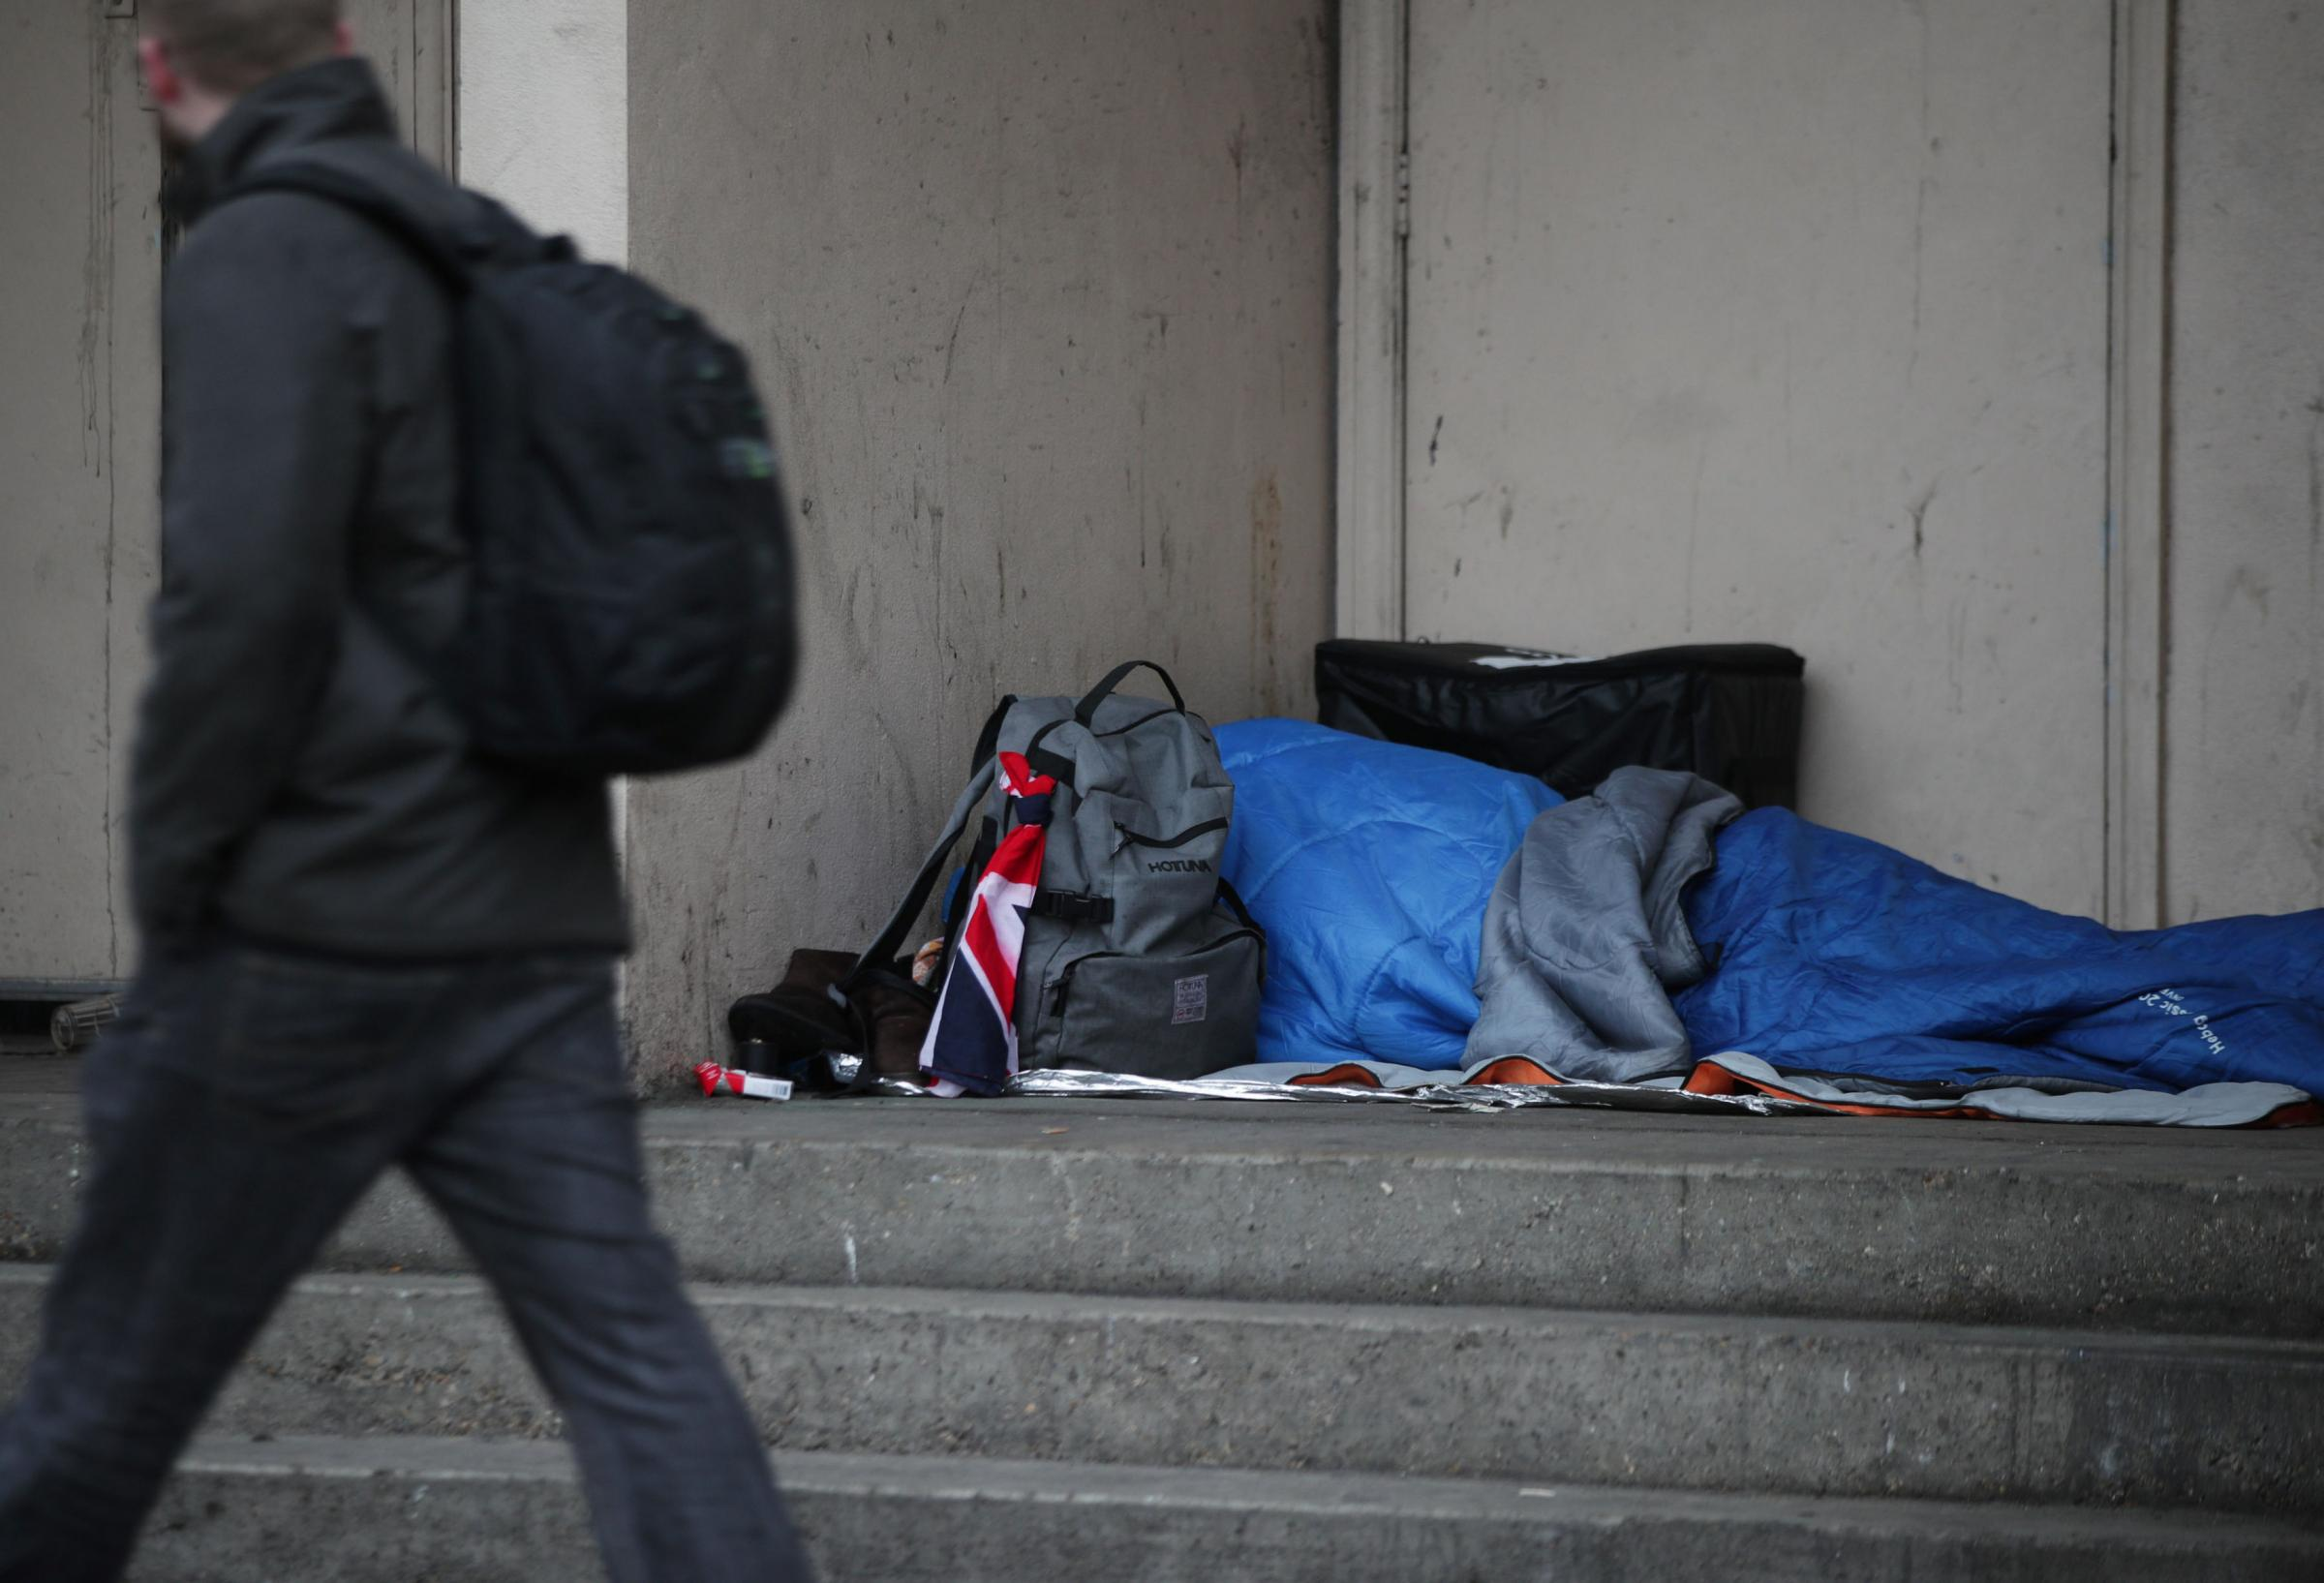 Help tackle homelessness rather than looking on the bright side Picture: Yui Mok/PA Wire